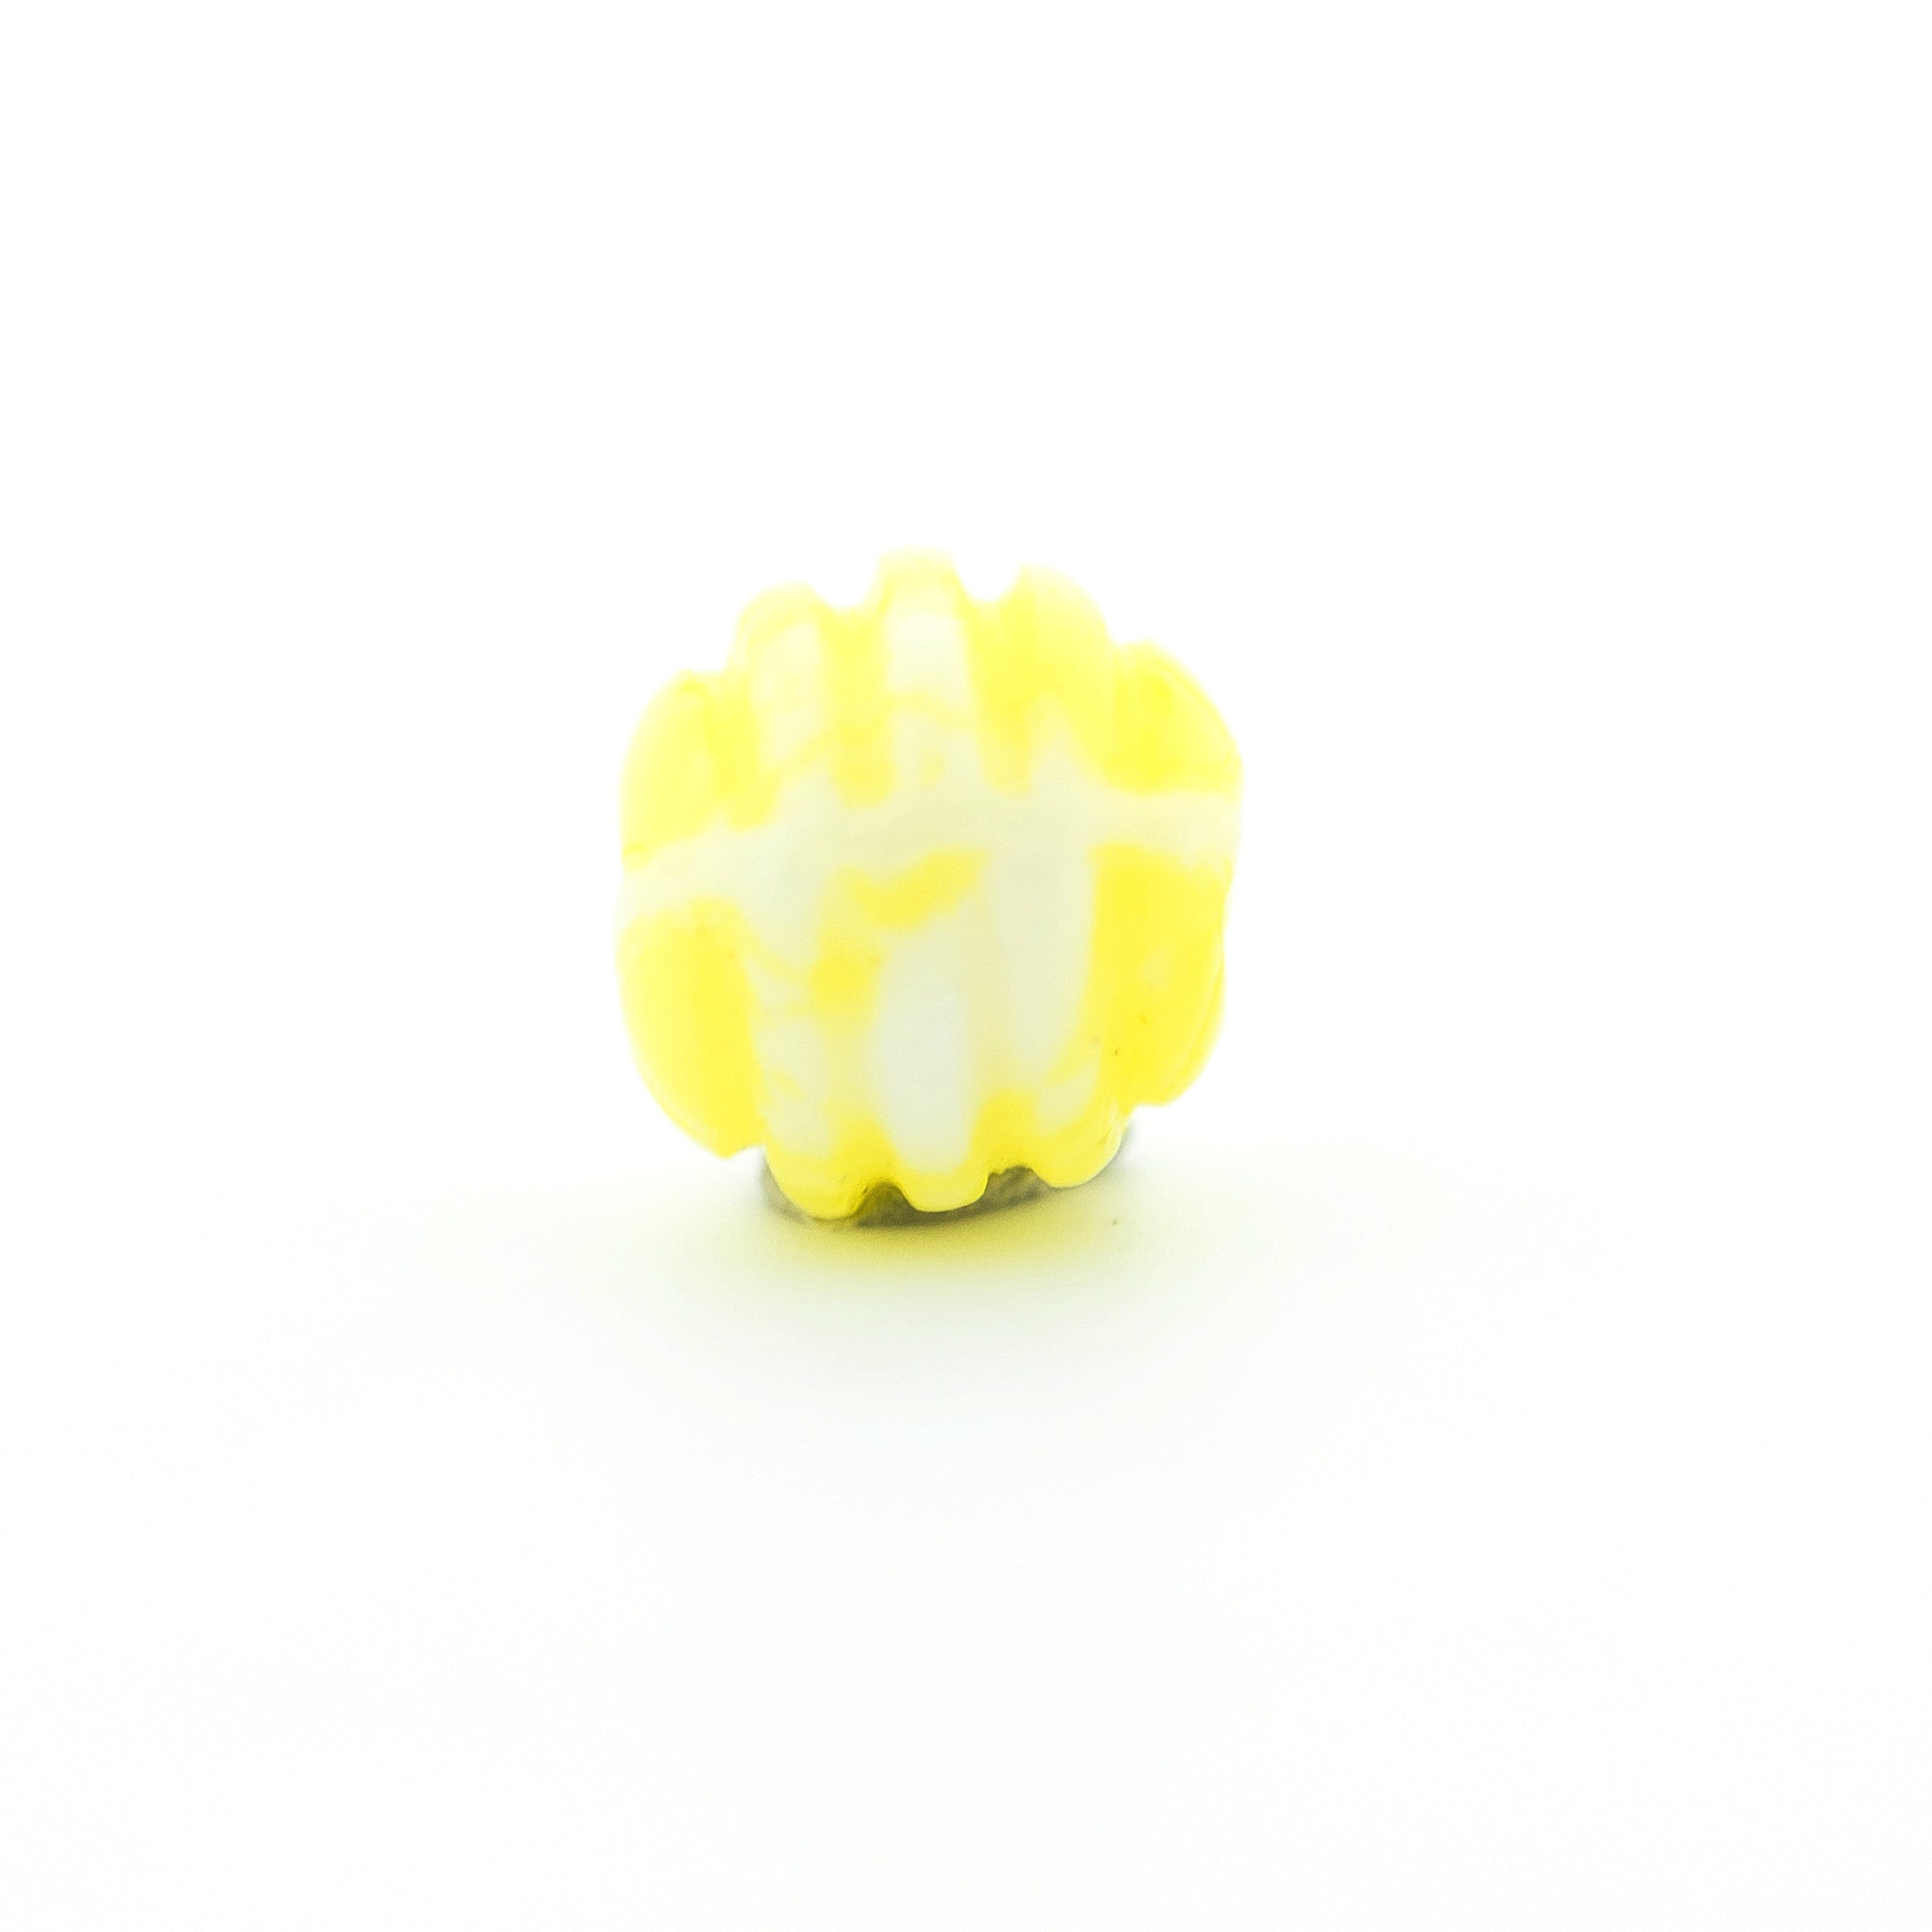 6MM Yellow Ribbed Glass Bead (144 pieces)